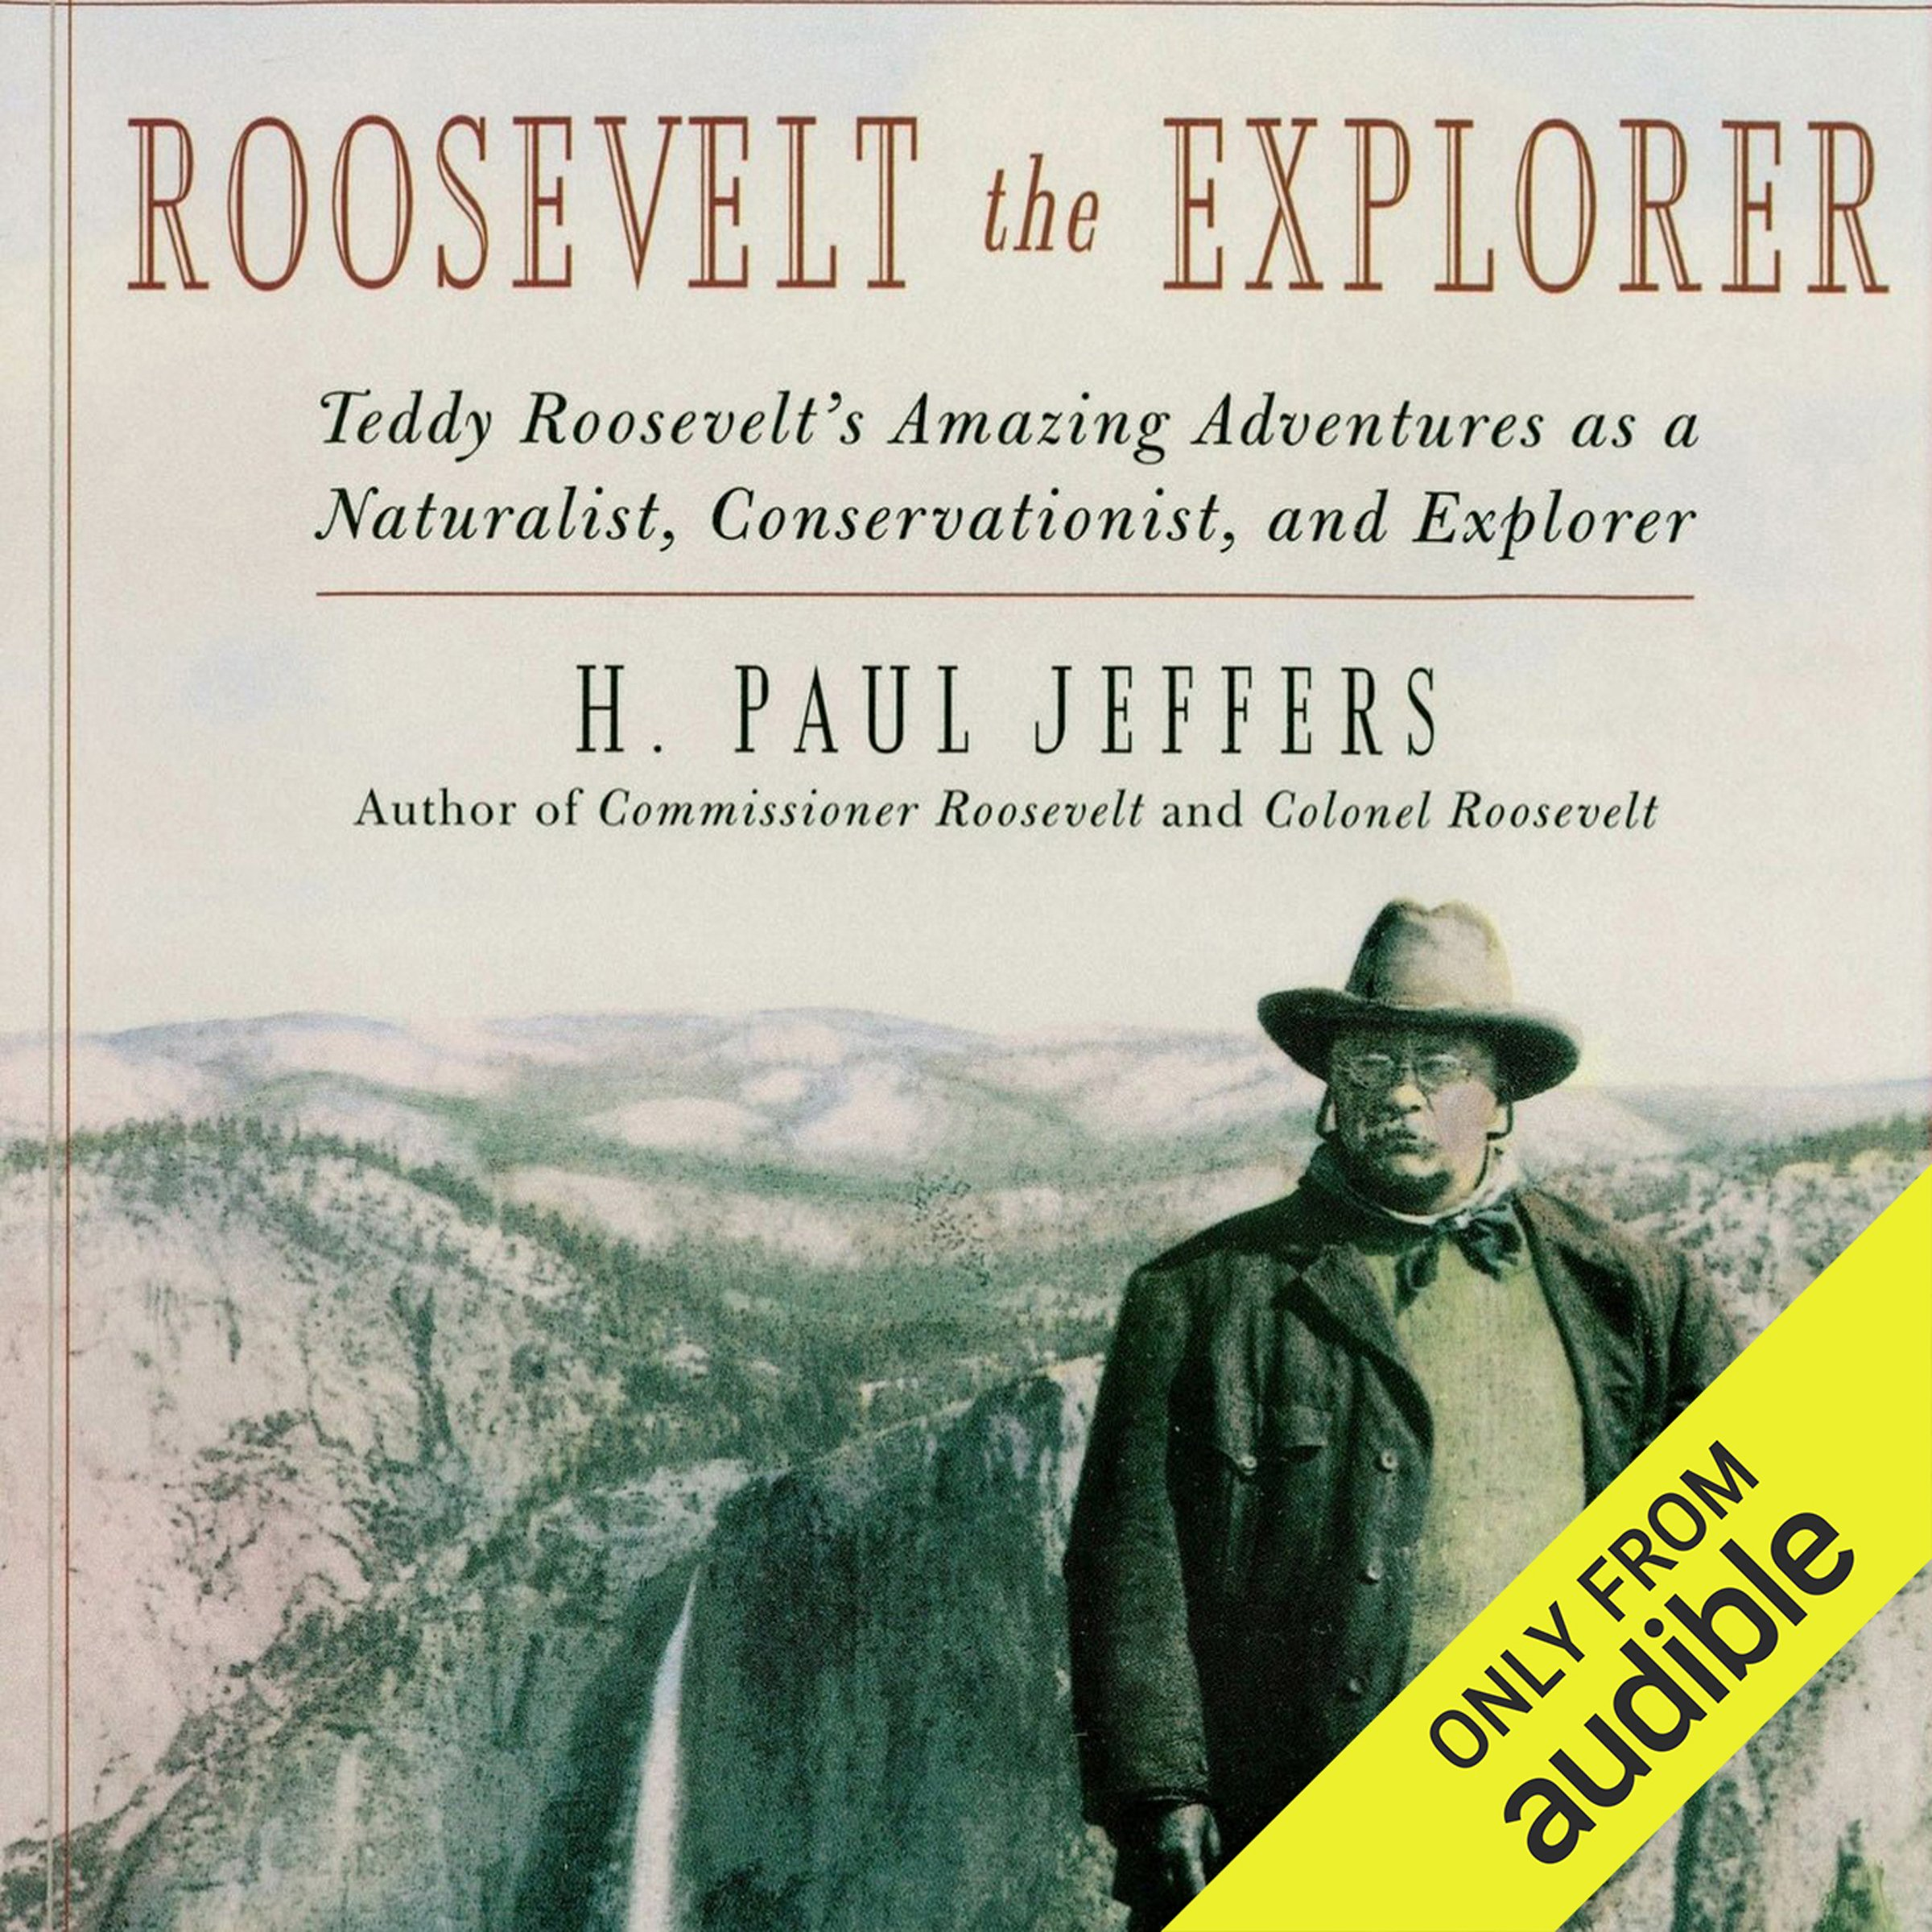 Roosevelt the Explorer: Teddy Roosevelt's Amazing Adventures as a Naturalist, Conservationist, and Explorer